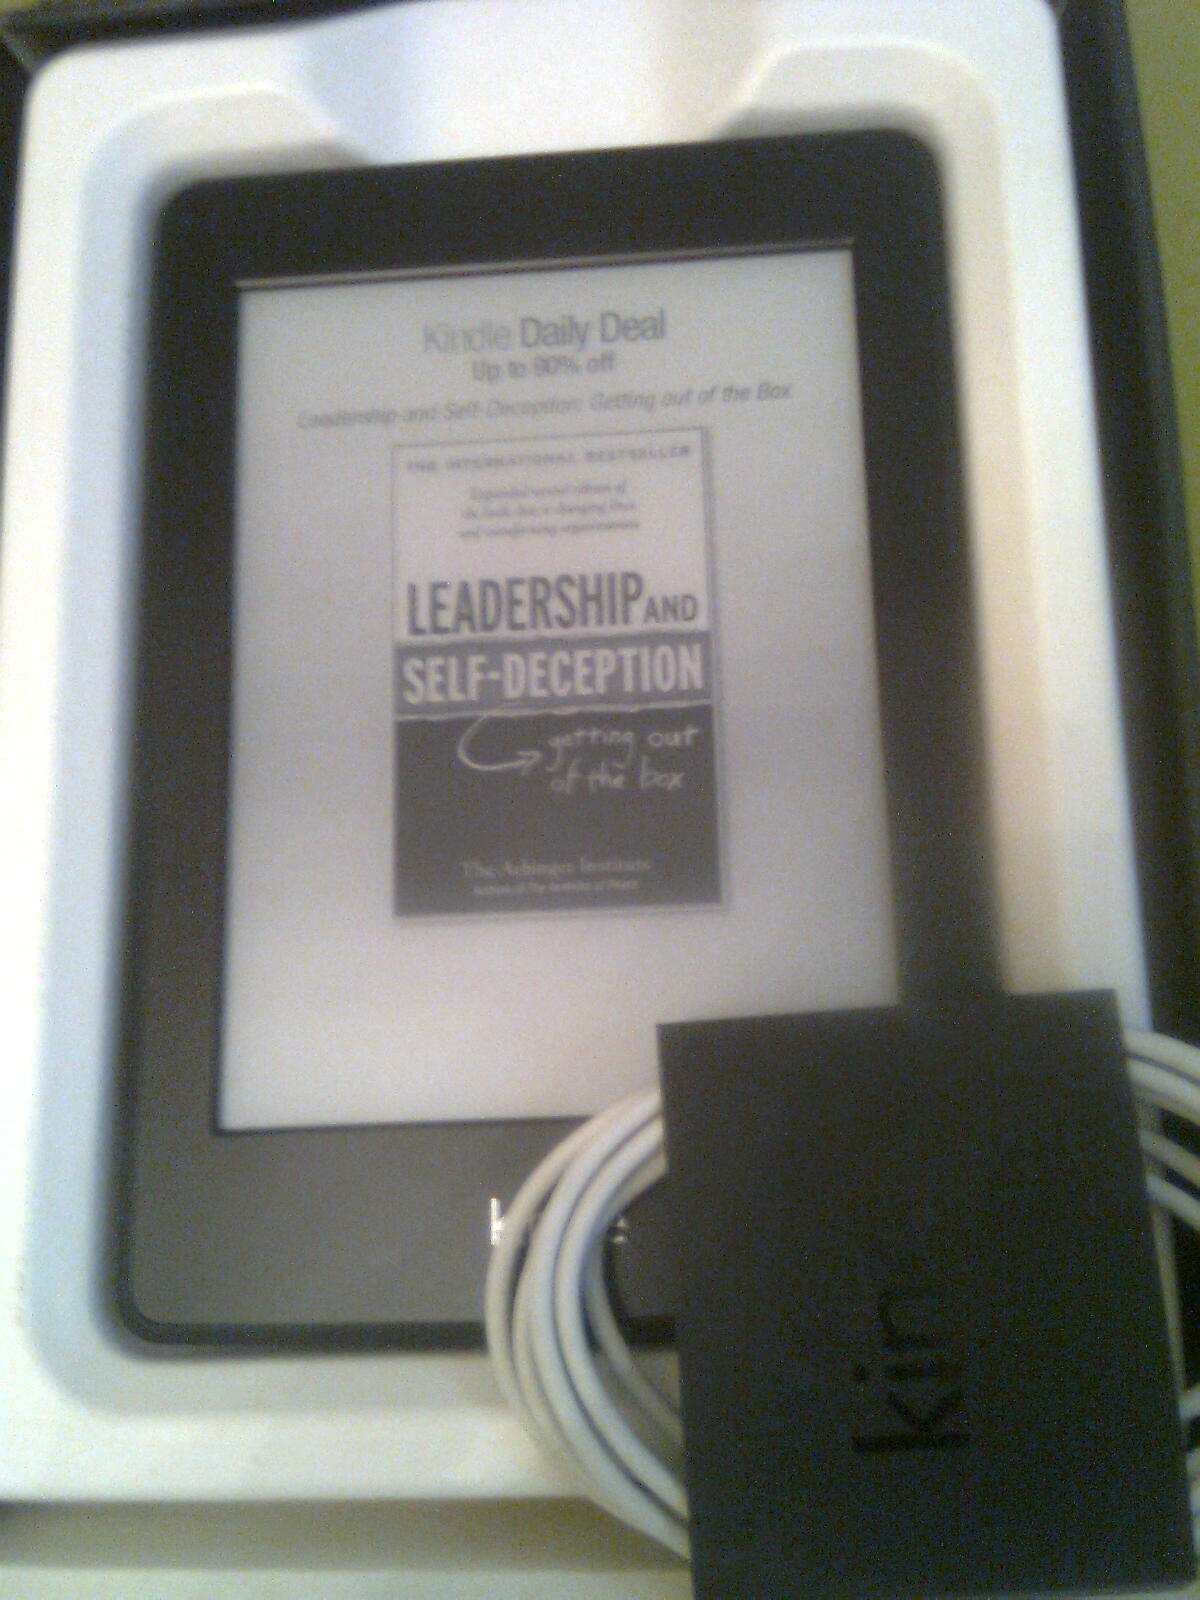 Inside You'll Find The Usual Usb Cable For Charging And Transferring  Content To The Kindle The Standard Packaging Does Not Include A Wall  Charger Or